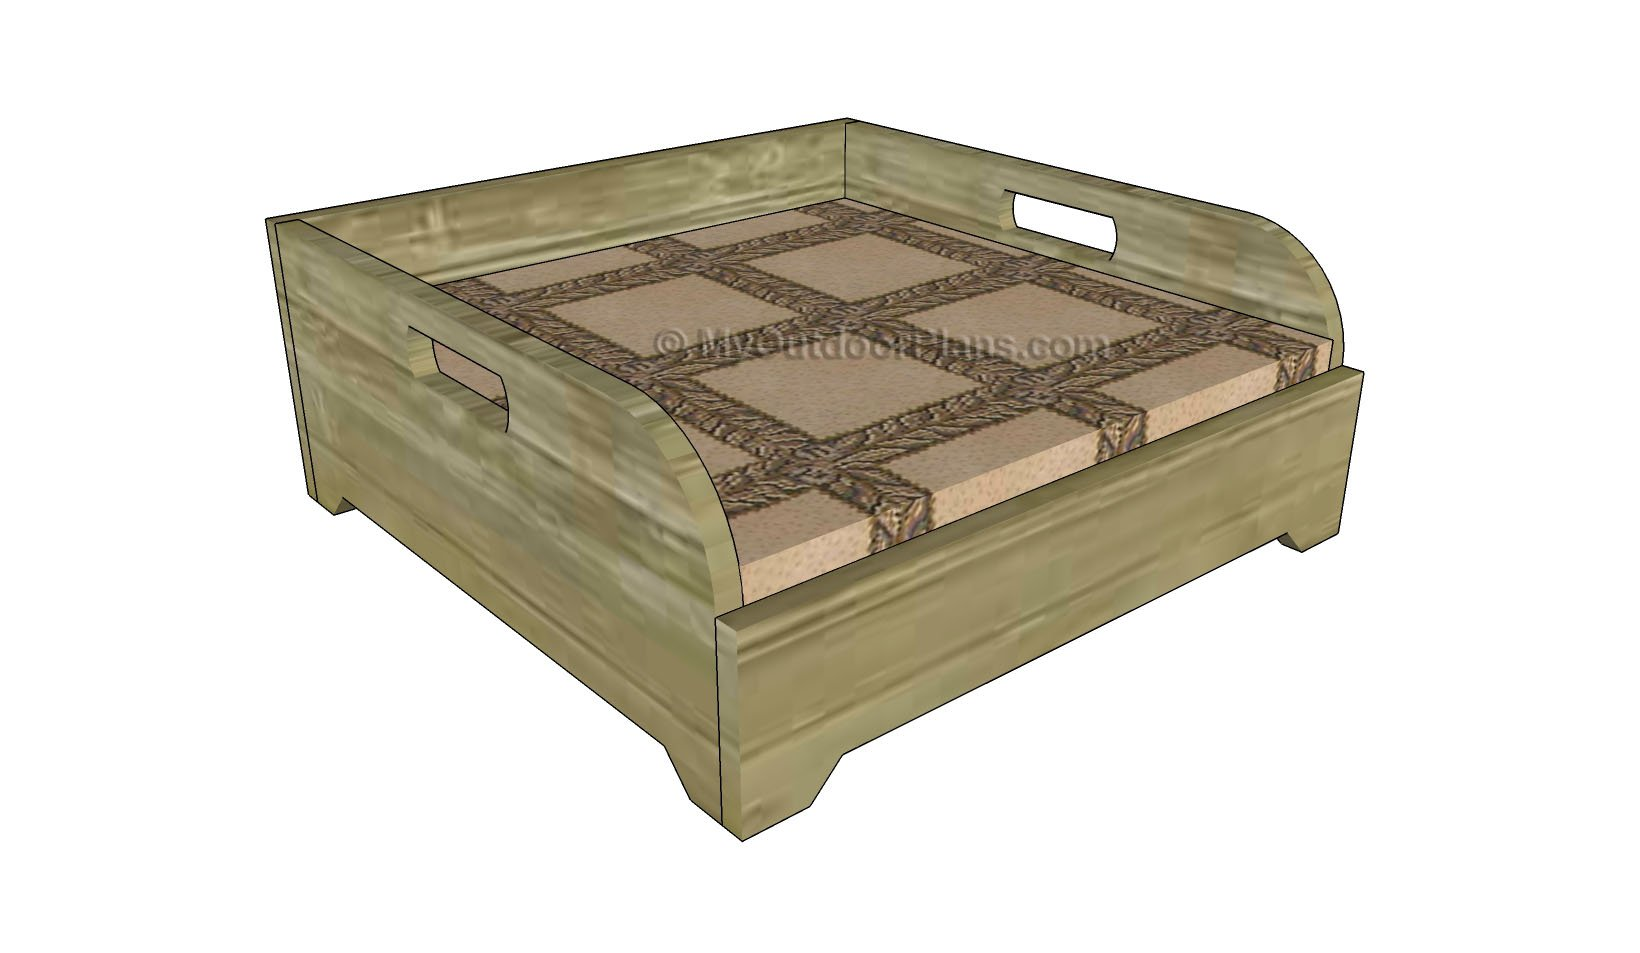 How to Build a Dog Bed | Free Outdoor Plans - DIY Shed, Wooden ...